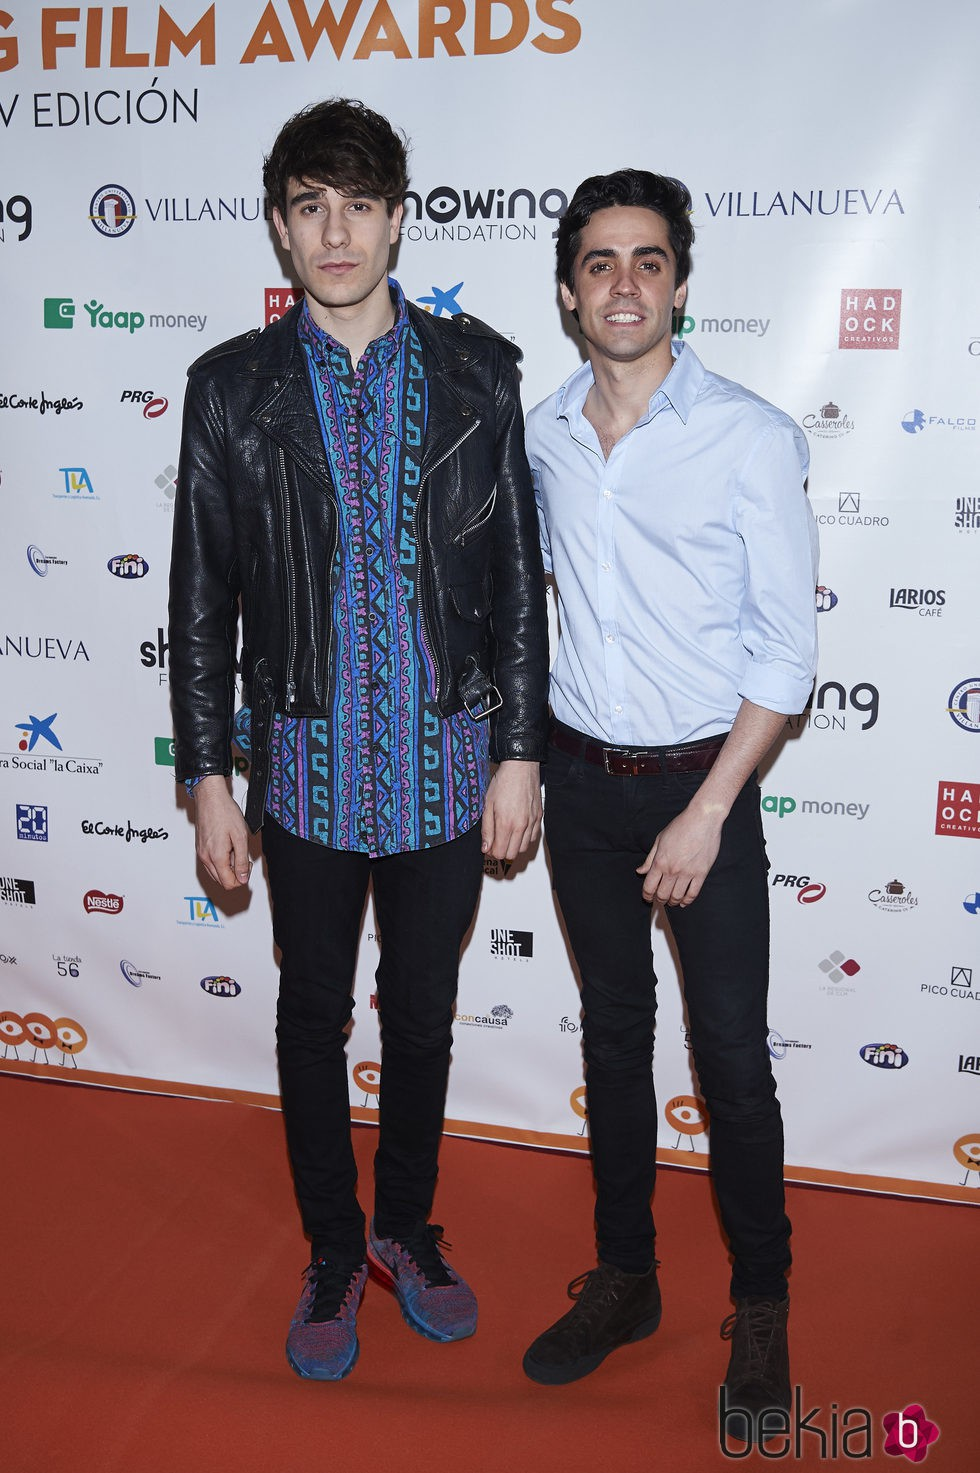 Javier Calvo y Javier Ambrossi en el Showing Film Awards